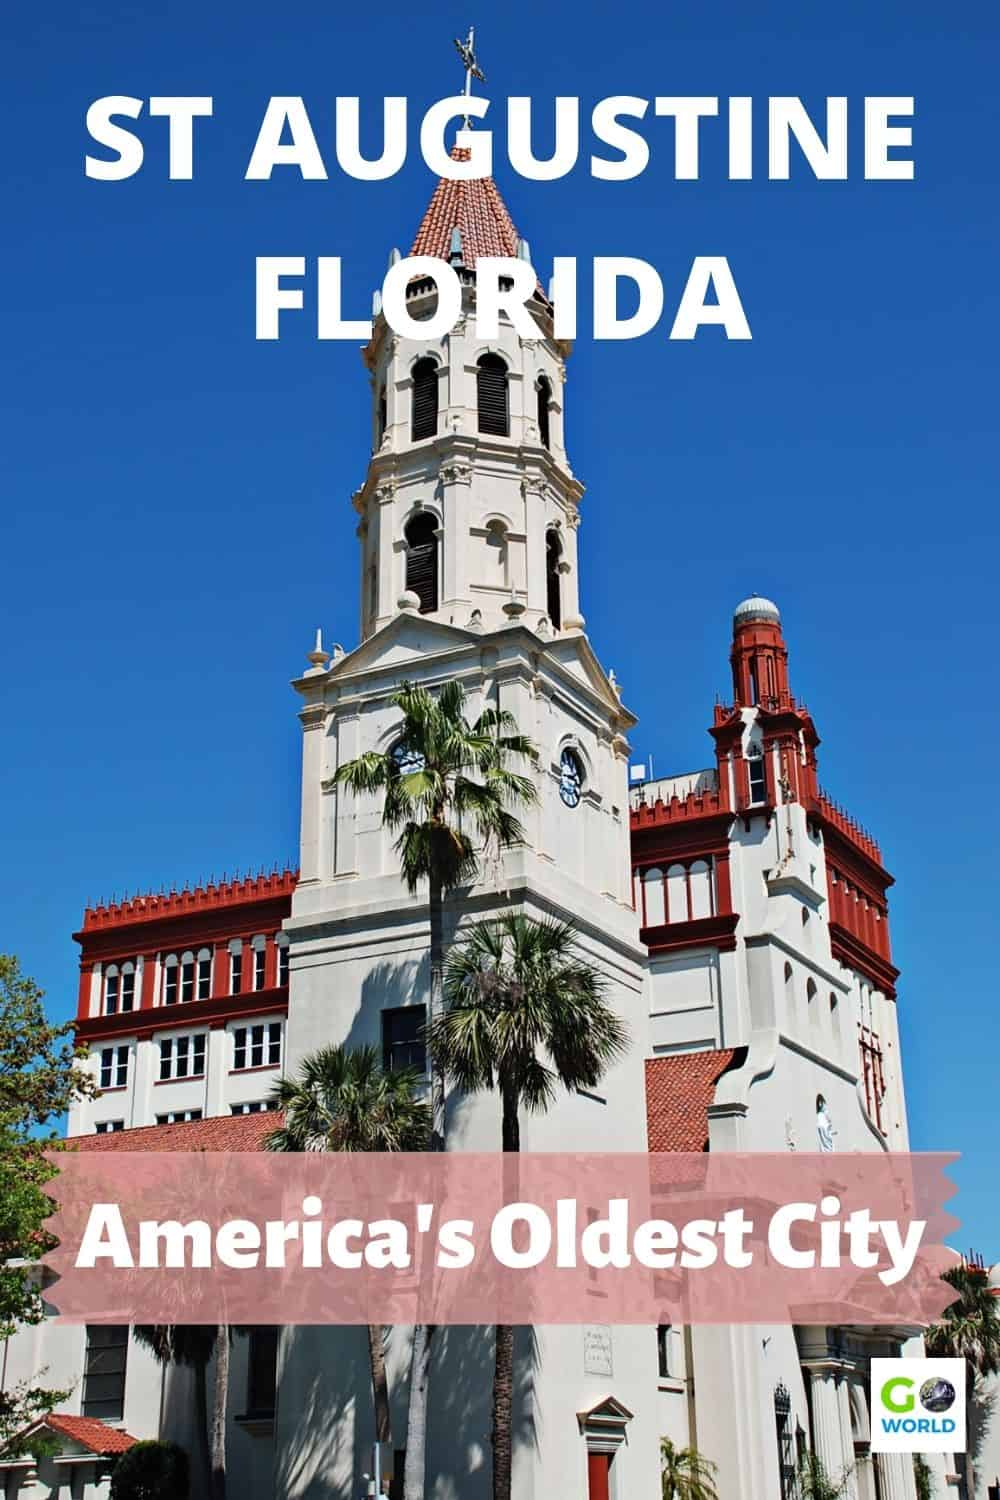 Discover all the things to do in St Augustine, Florida. It's one of America's oldest cities full of charm, history, ghosts and good food. #StAugustineFlorida #TravelFlorida #OldestCityinAmerica